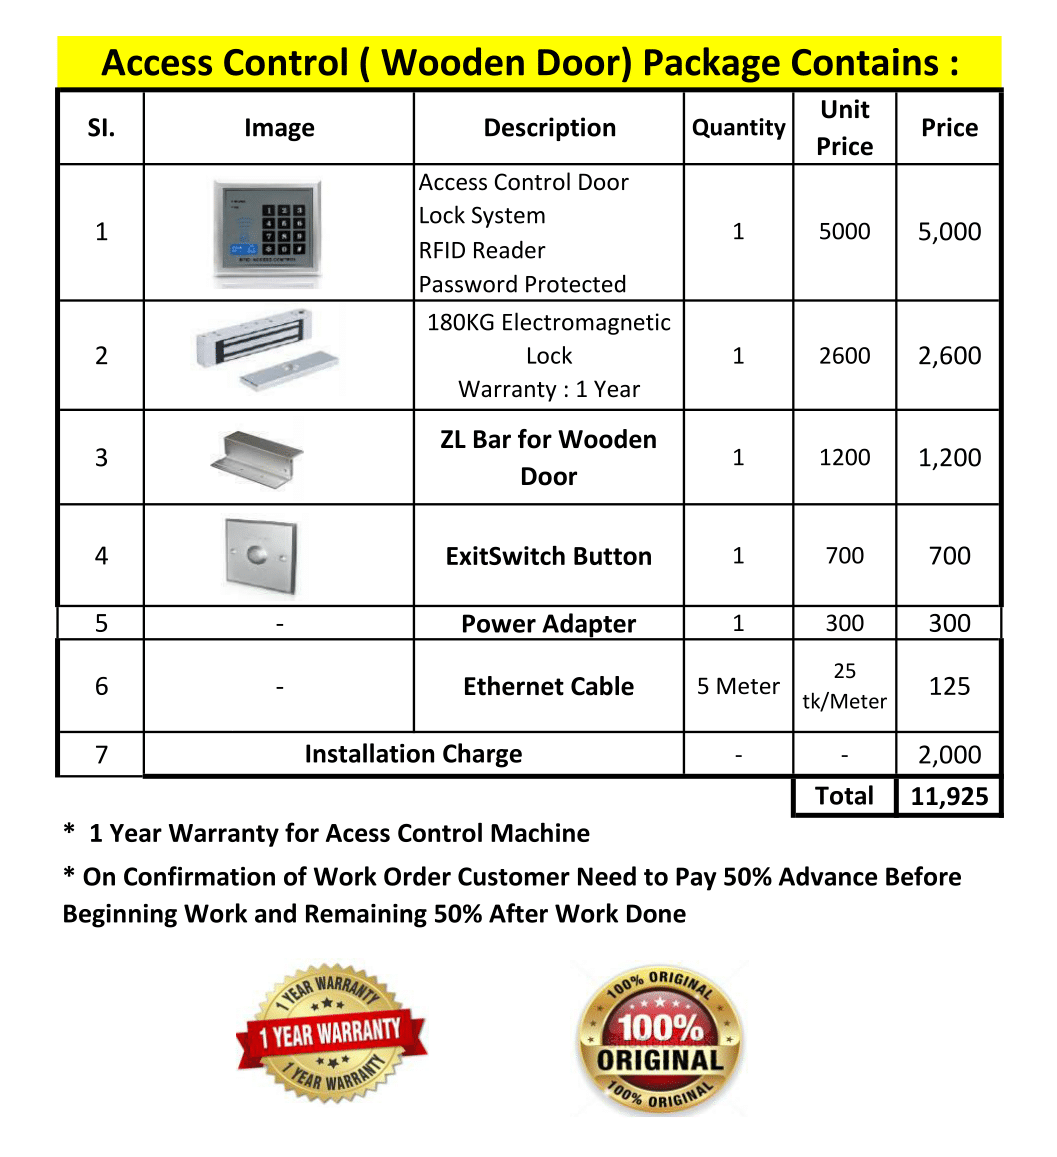 Access Control System For Wooden Door